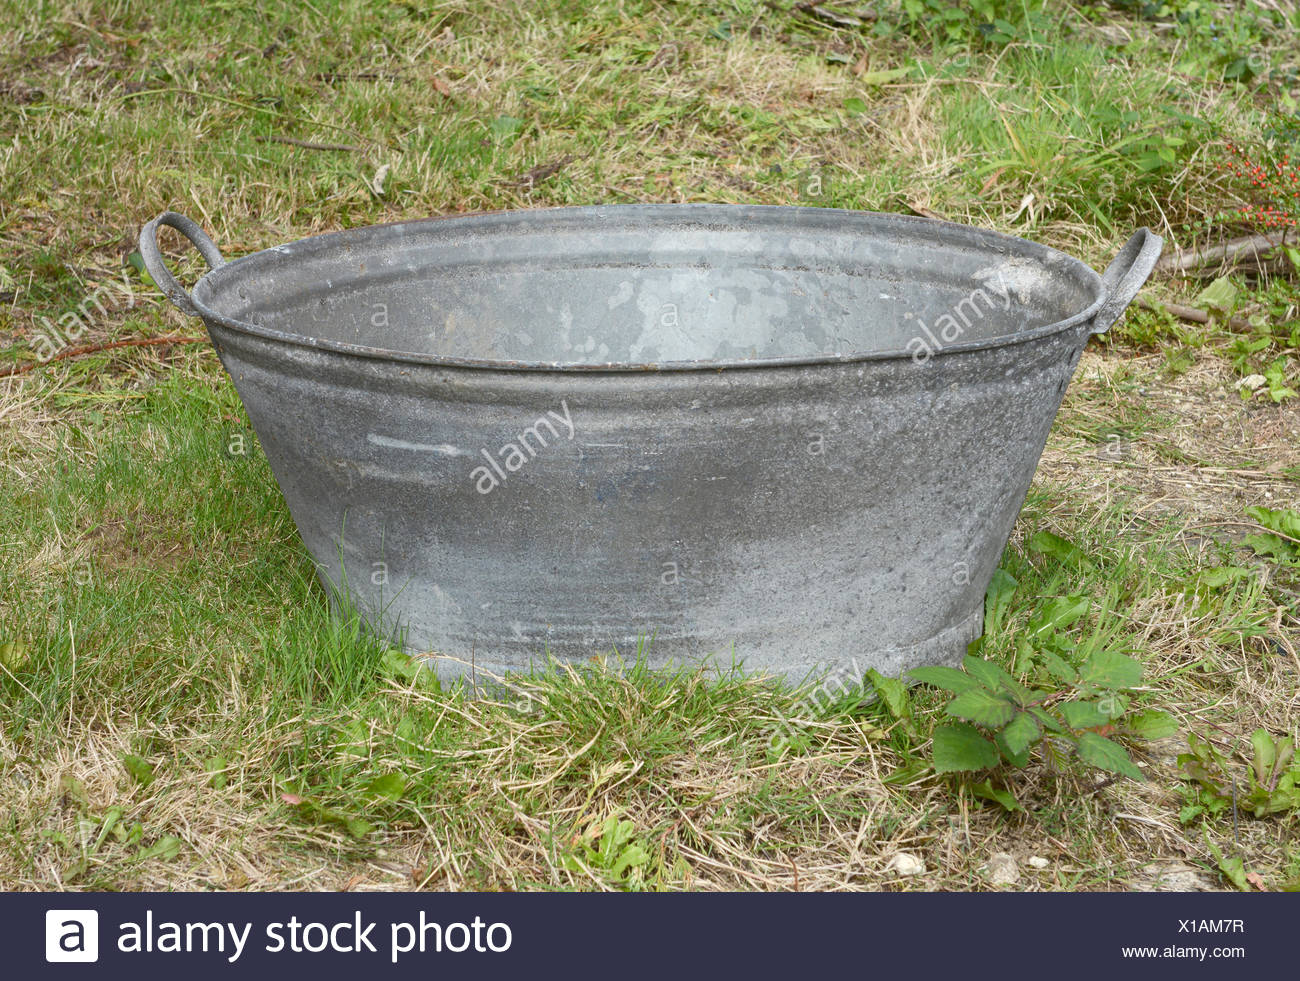 Empty Tin Bath Standing On Rough Grass And Weeds   Stock Image